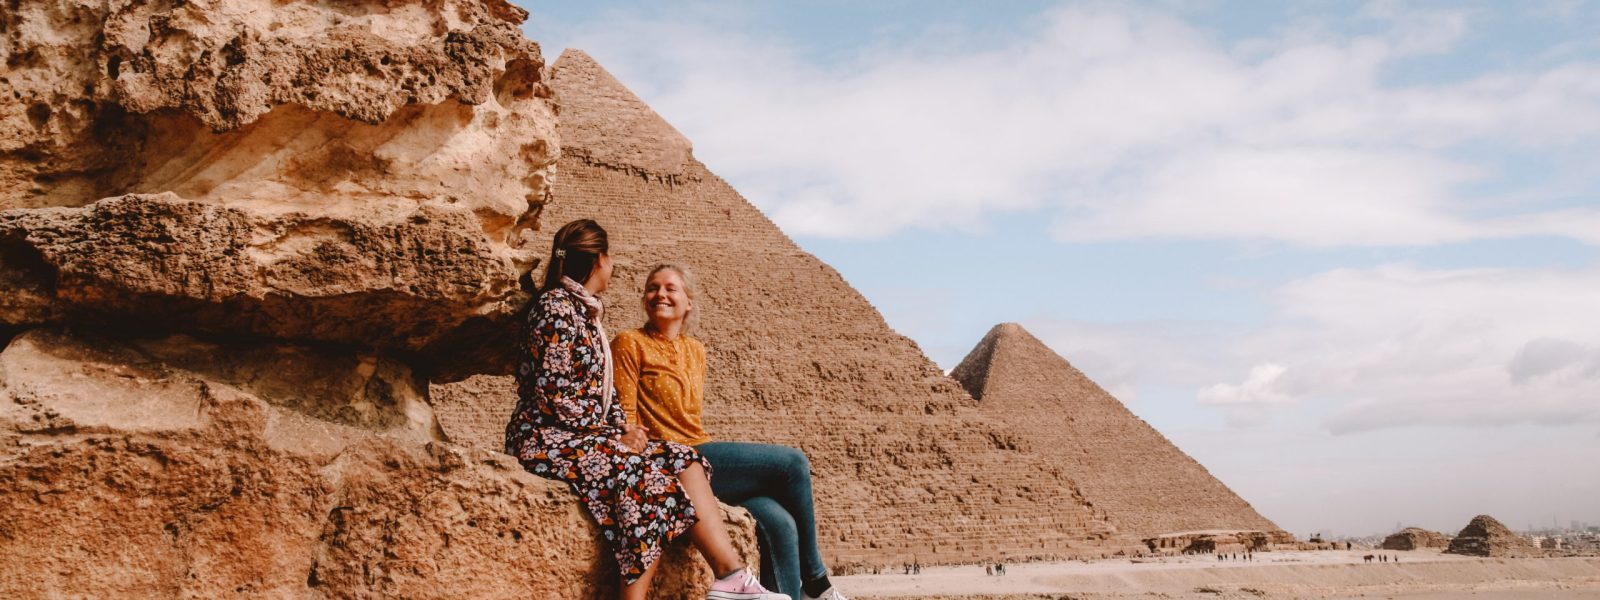 20 tips for the pyramids and the Sphinx